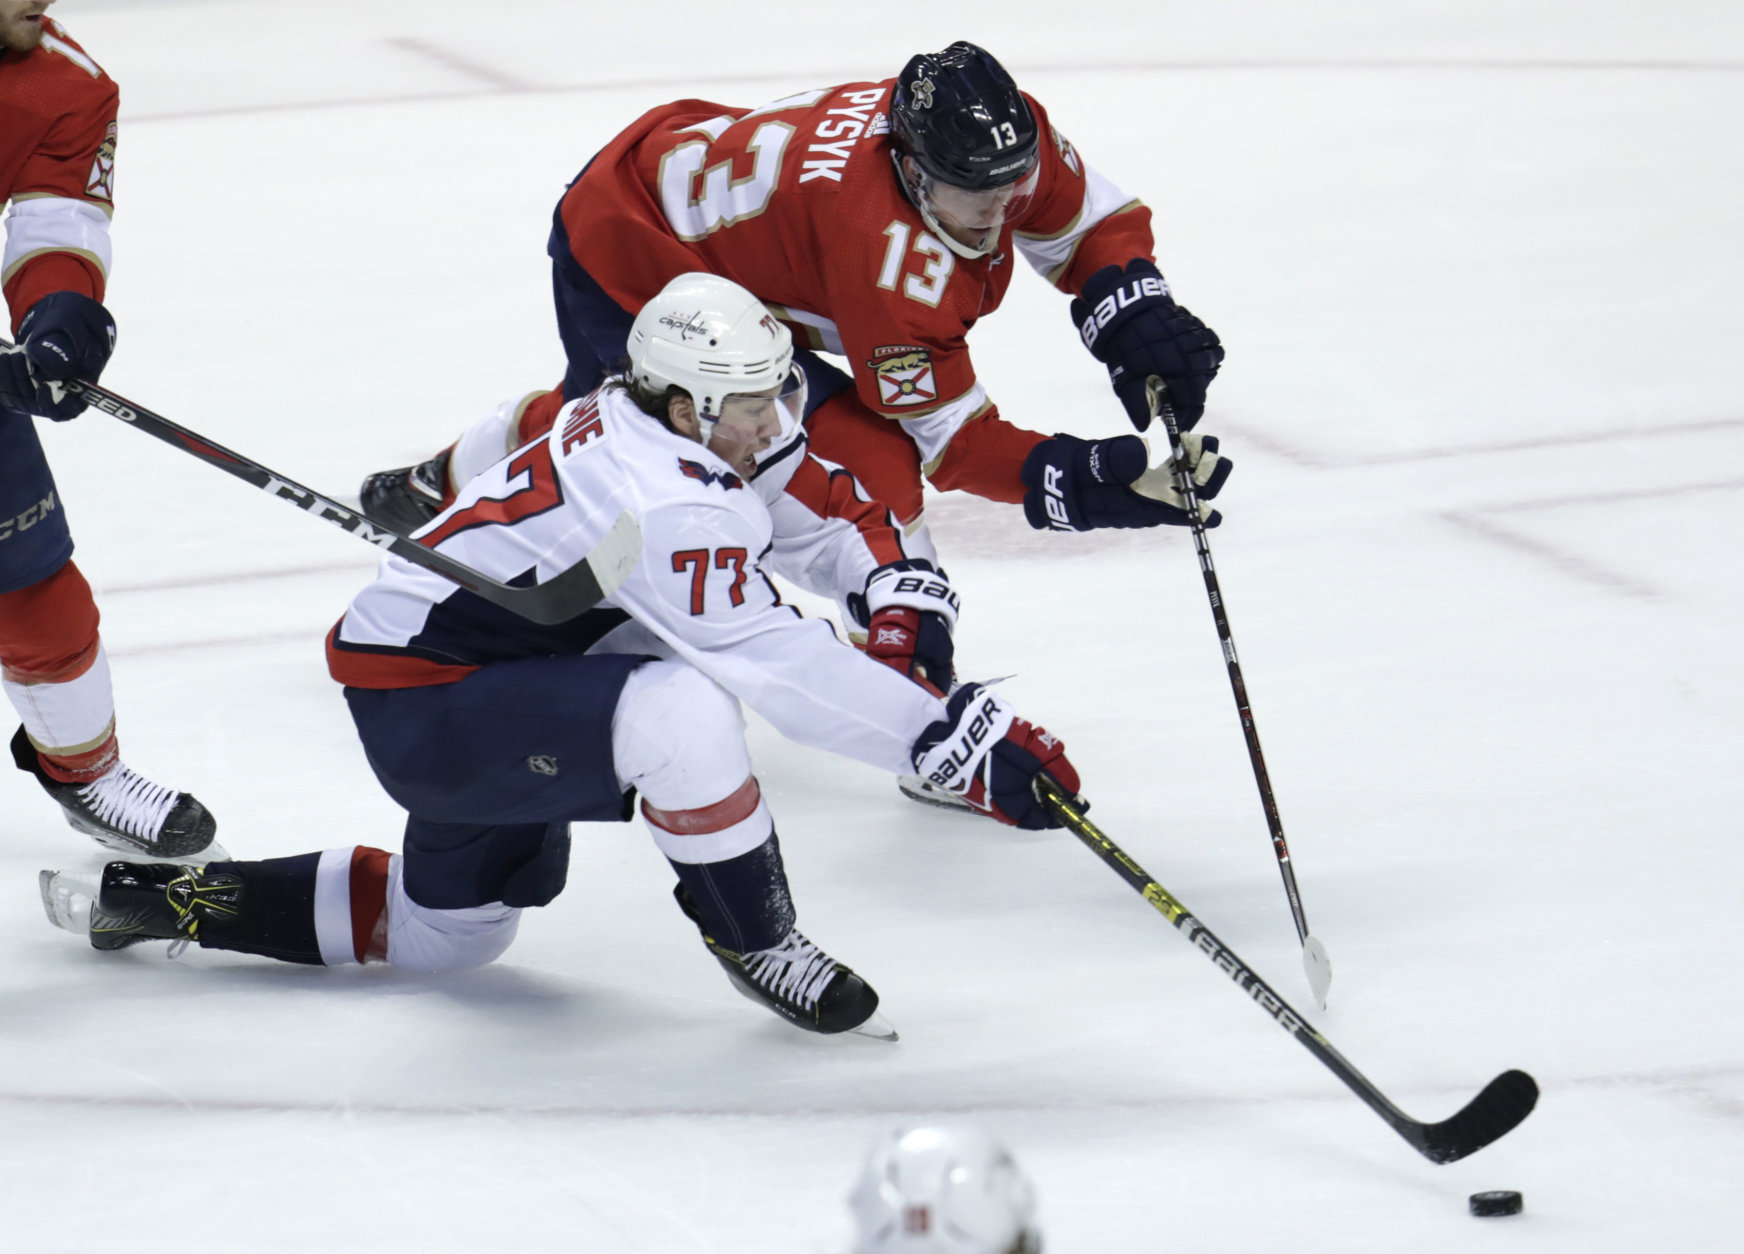 Washington Capitals right wing T.J. Oshie (77) and Florida Panthers defenseman Mark Pysyk (13) go for the puck during the third period of an NHL hockey game, Monday, April 1, 2019, in Sunrise, Fla. (AP Photo/Lynne Sladky)